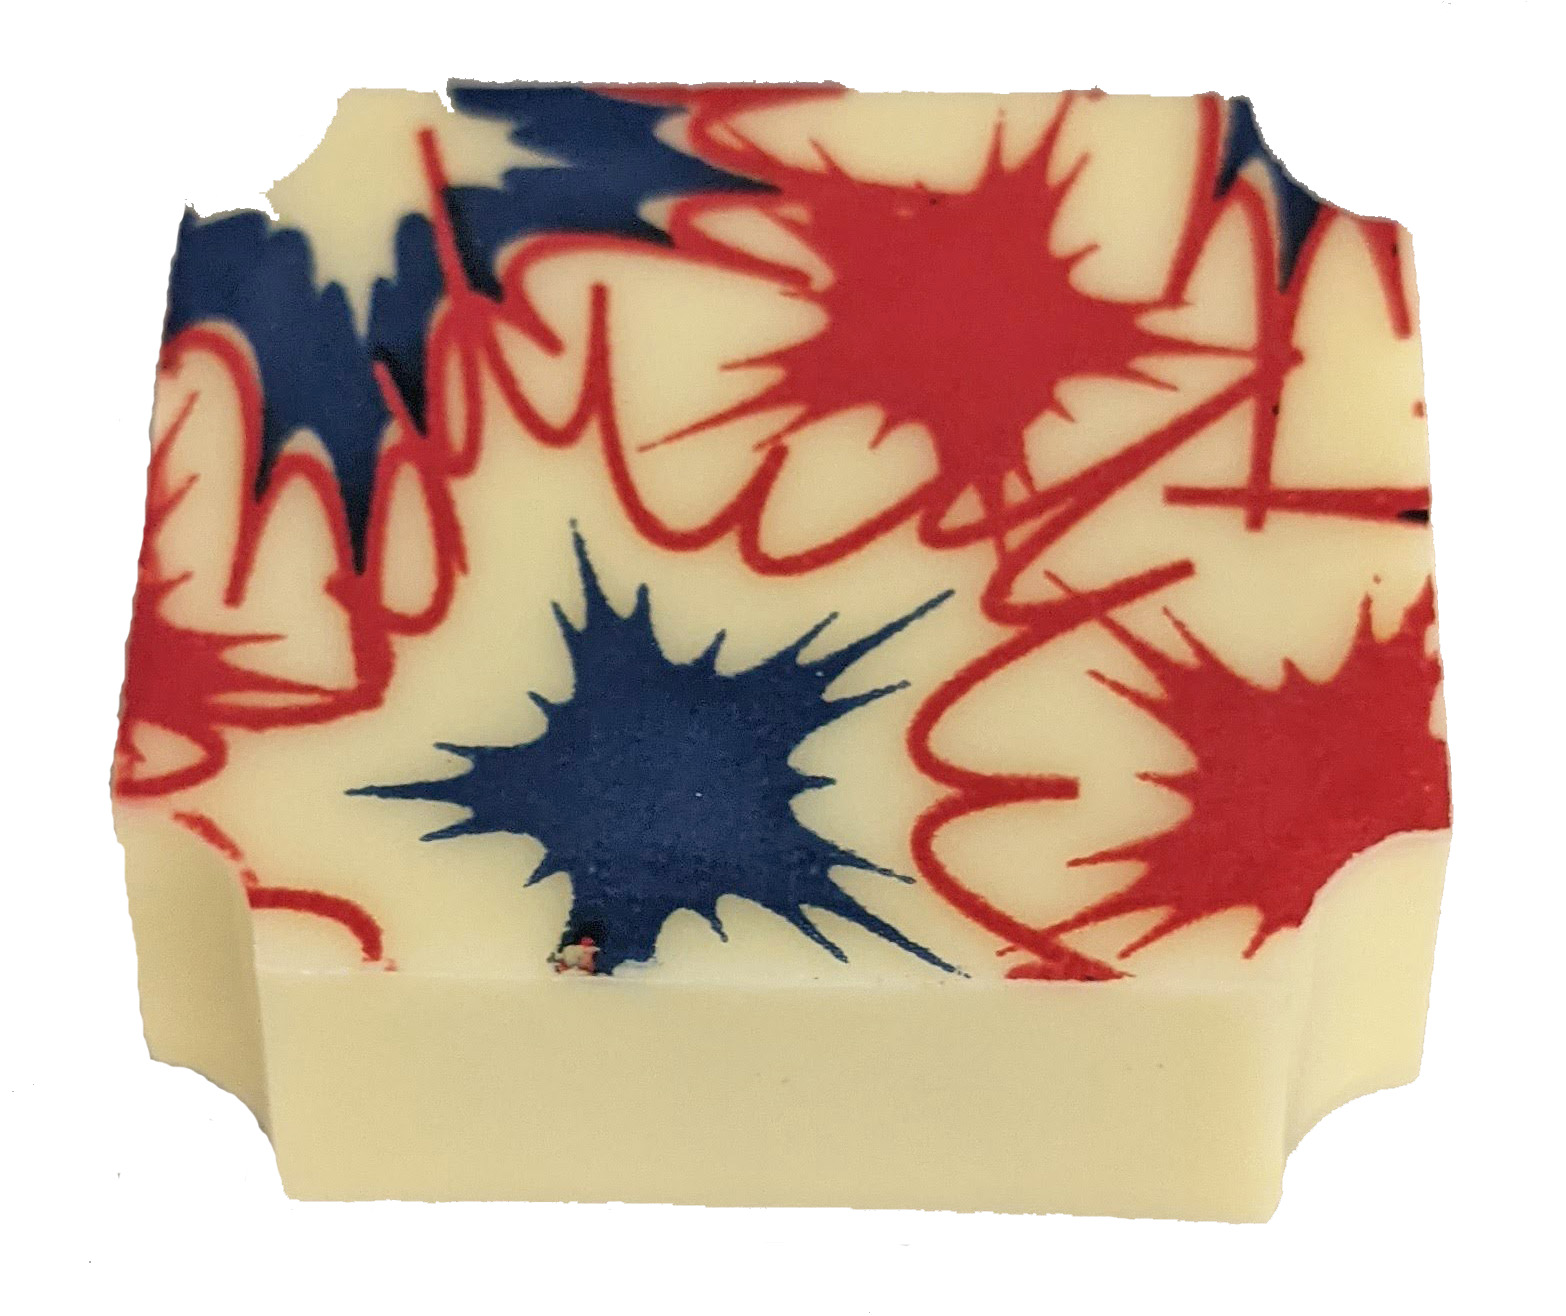 White rectangle chocolate with red and blue design